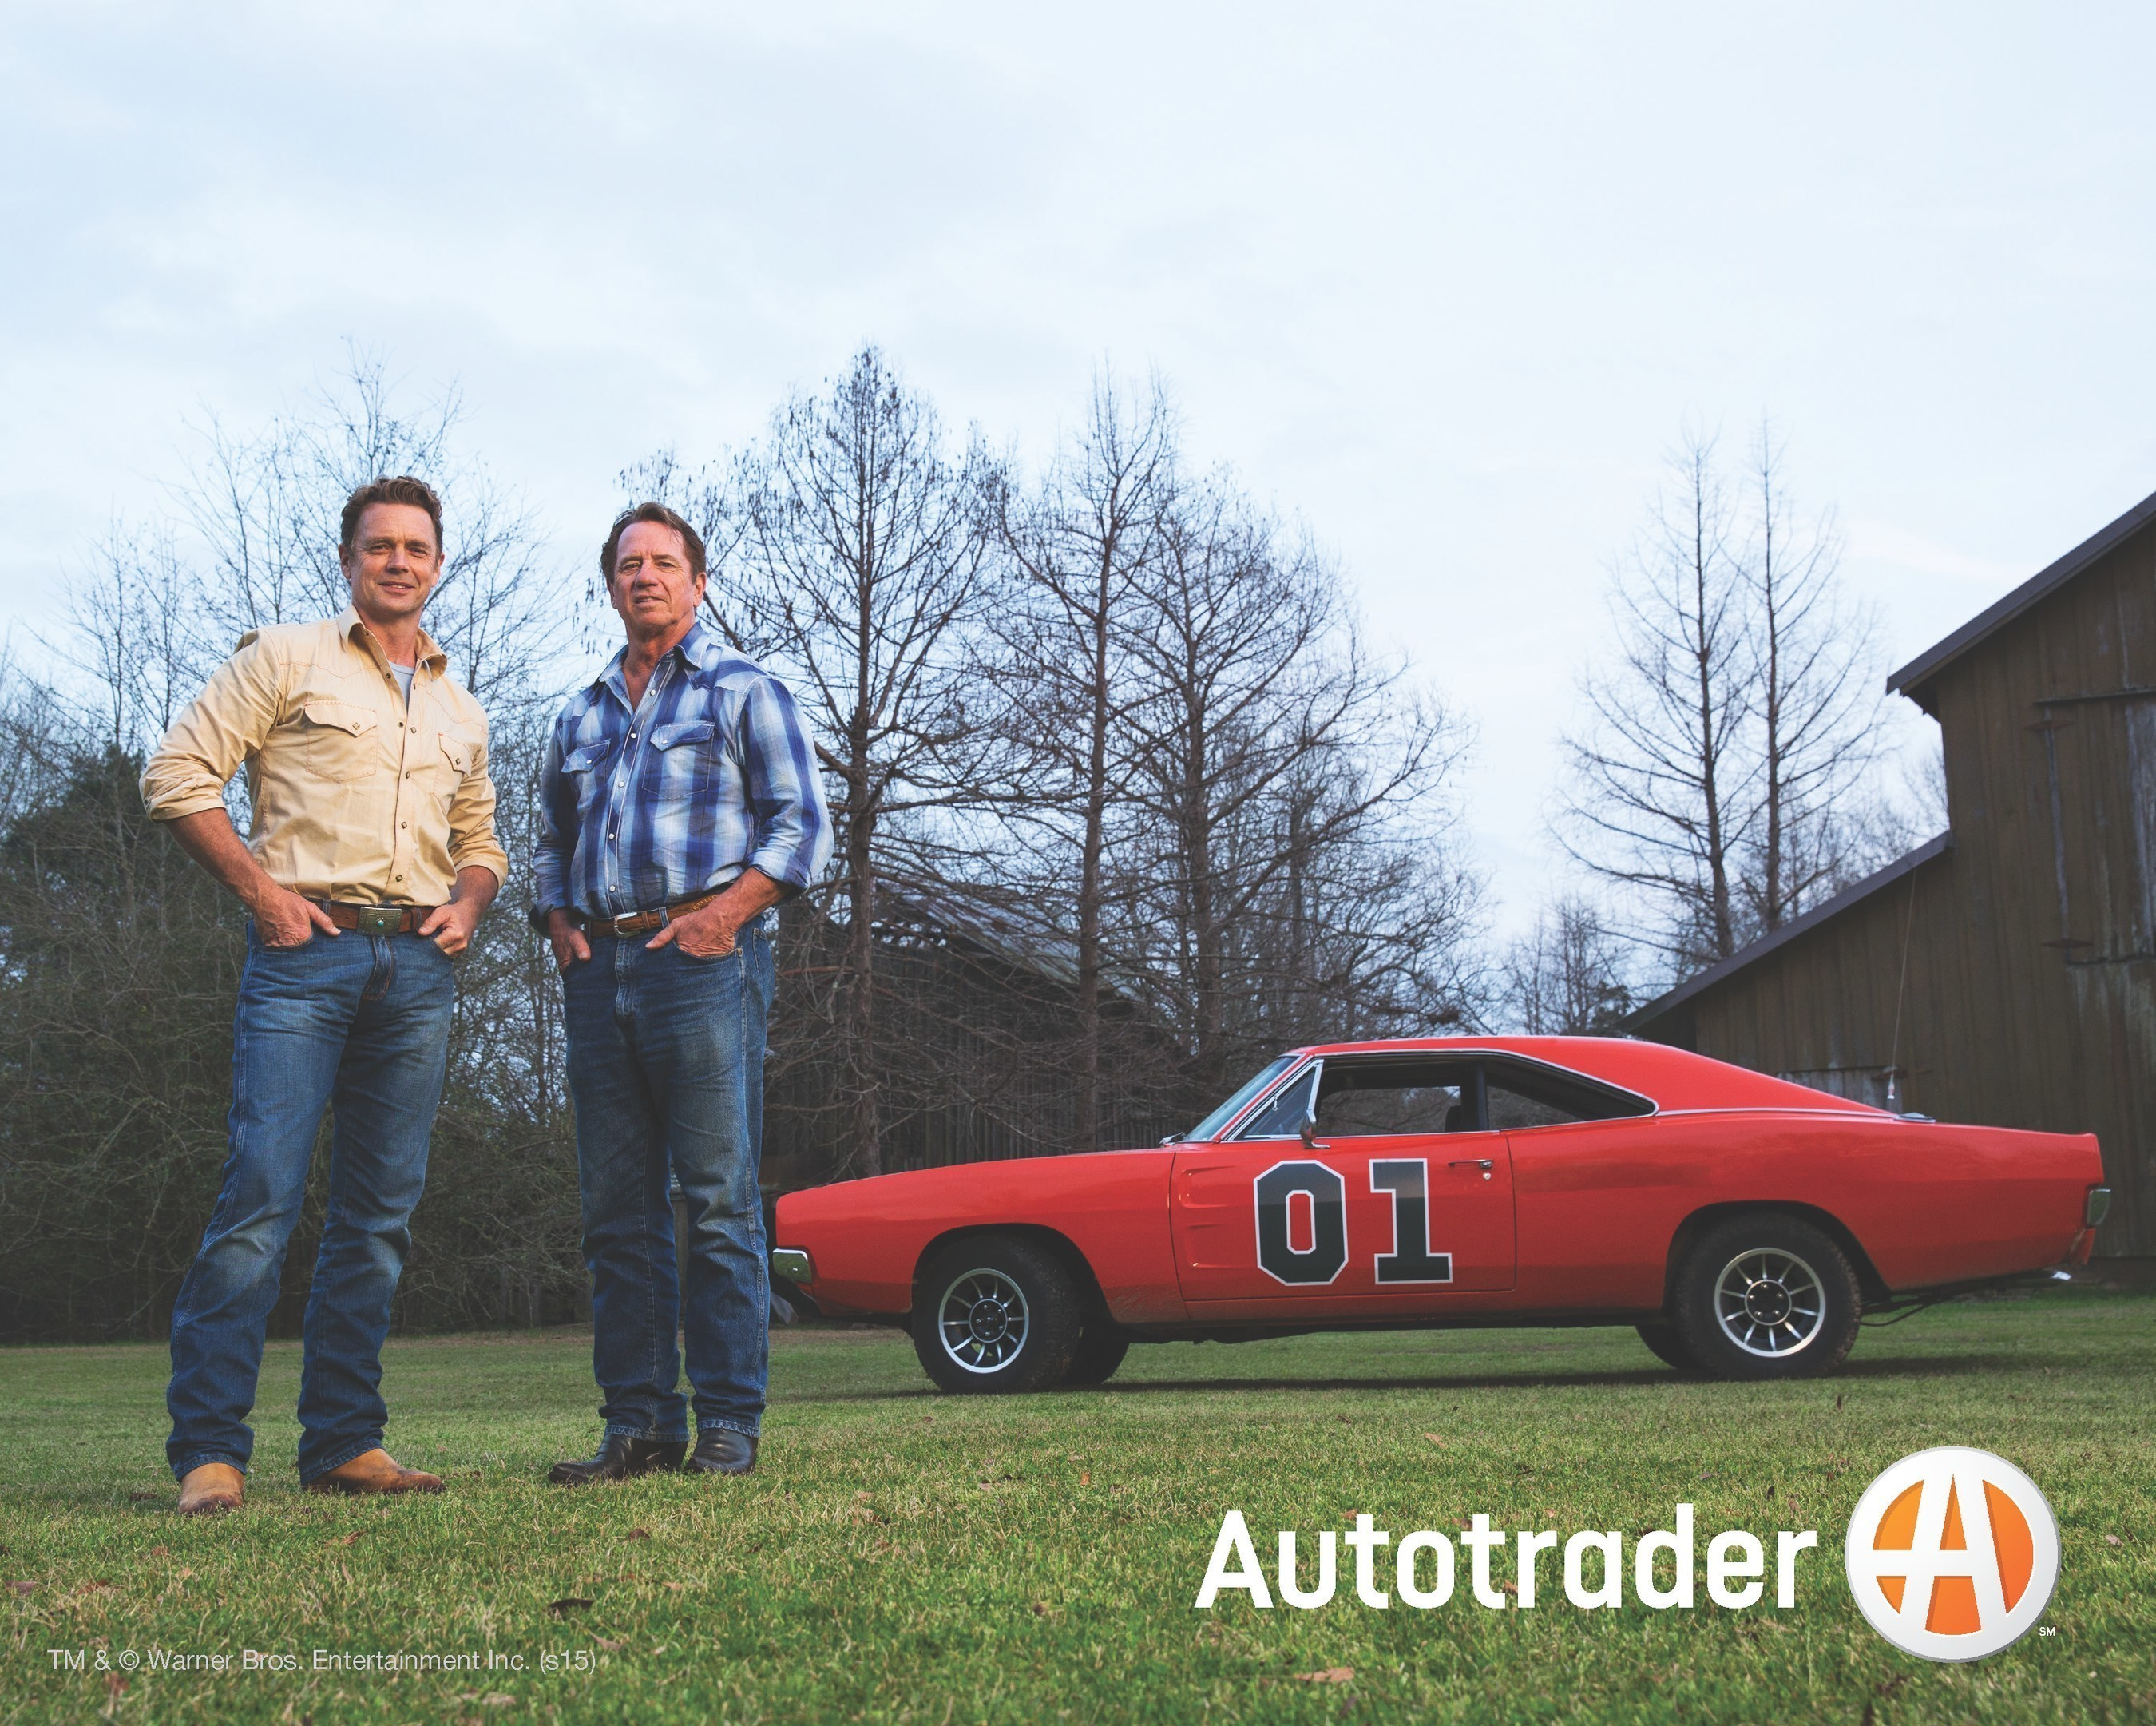 """Autotrader Enlists Stars of """"The Dukes of Hazzard"""" to Celebrate the Company's New Logo at Bristol Motor Speedway"""